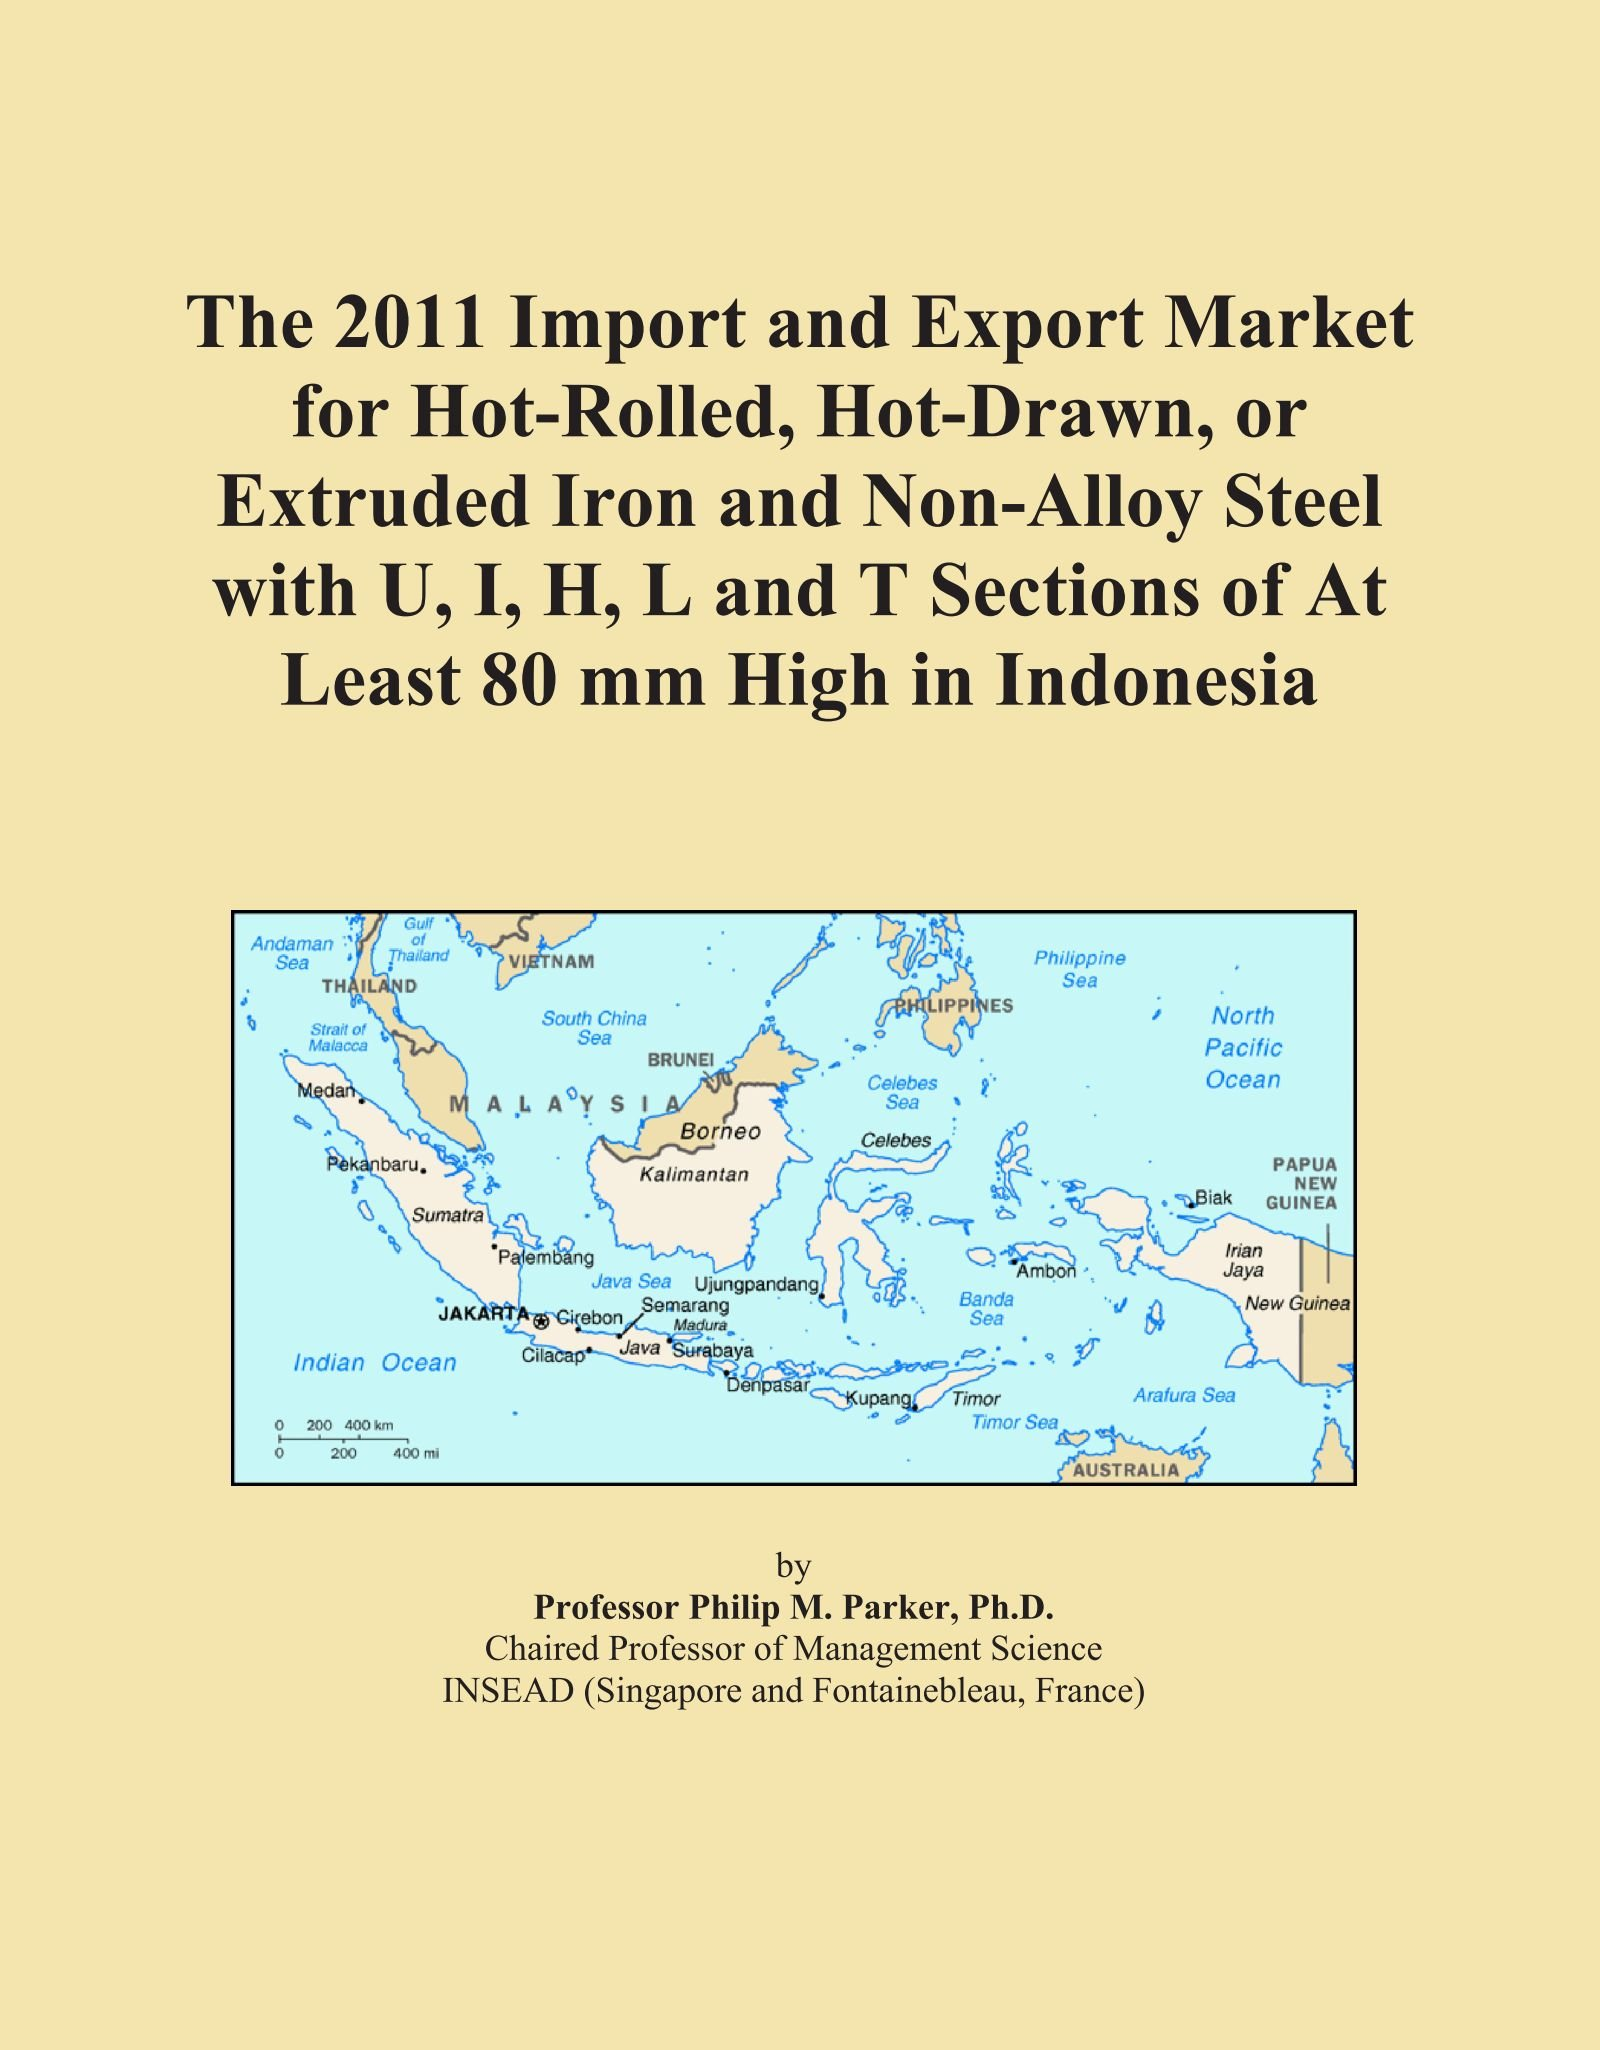 The 2011 Import and Export Market for Hot-Rolled, Hot-Drawn, or Extruded Iron and Non-Alloy Steel with U, I, H, L and T Sections of At Least 80 mm High in Indonesia pdf